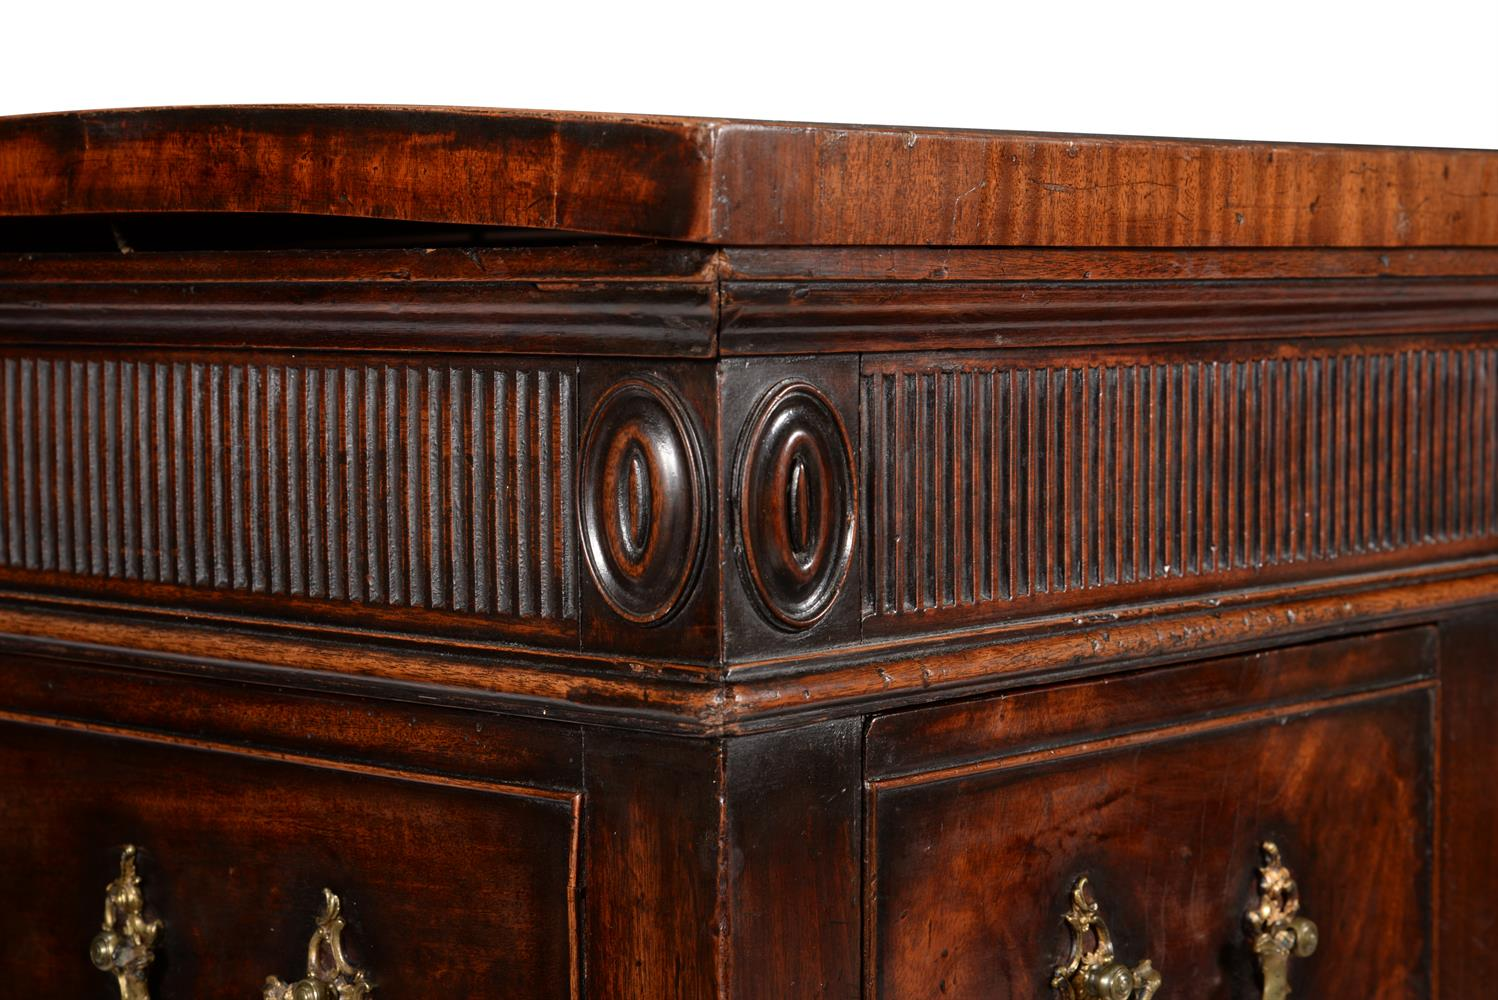 A GEORGE III MAHOGANY SERVING TABLE, CIRCA 1790 - Image 2 of 6